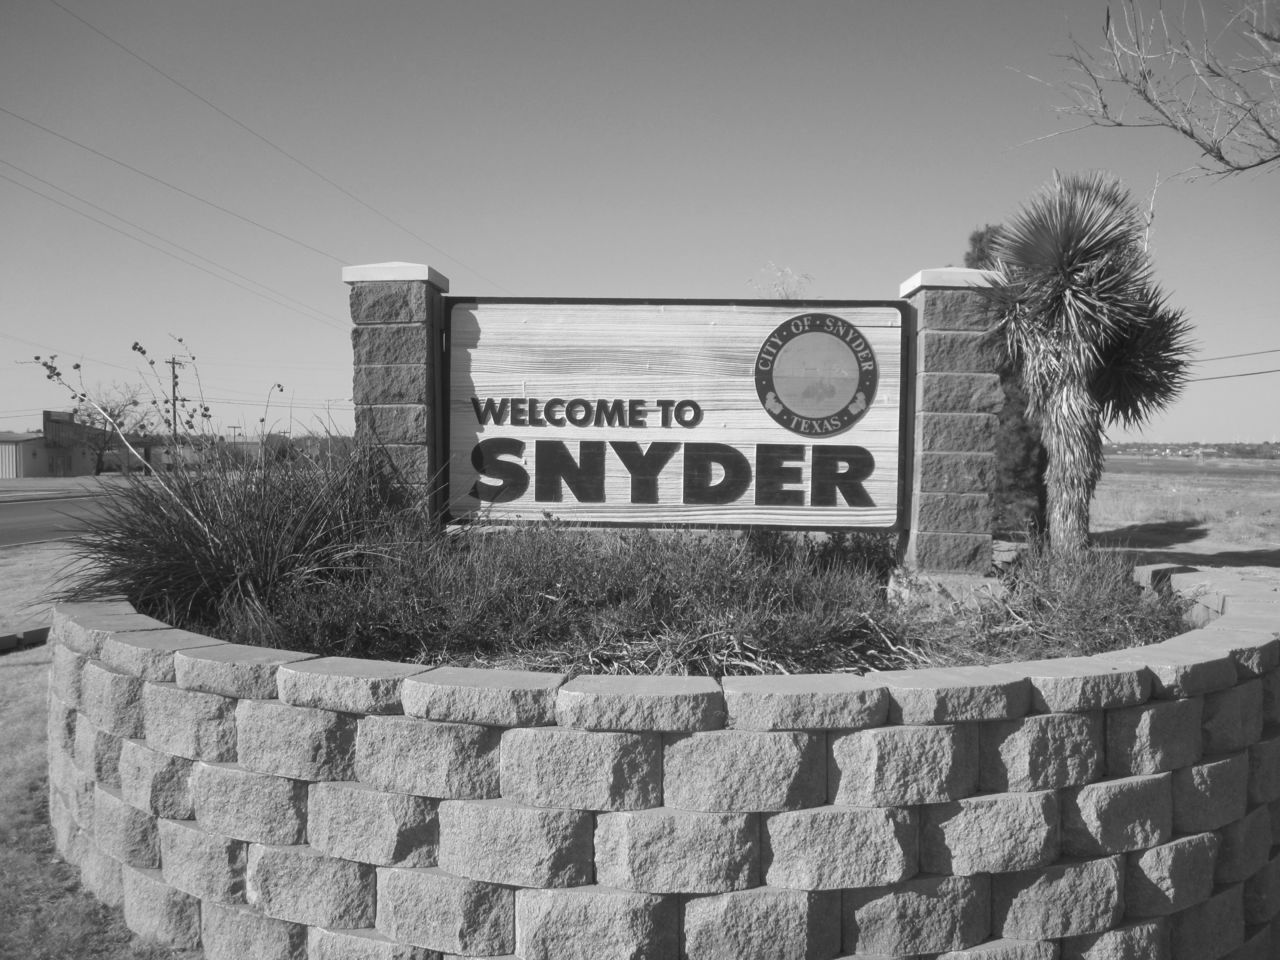 Égarés - 14/12/34 - Page 3 Revised_photo_Snyder_TX_welcome_sign_IMG_1766